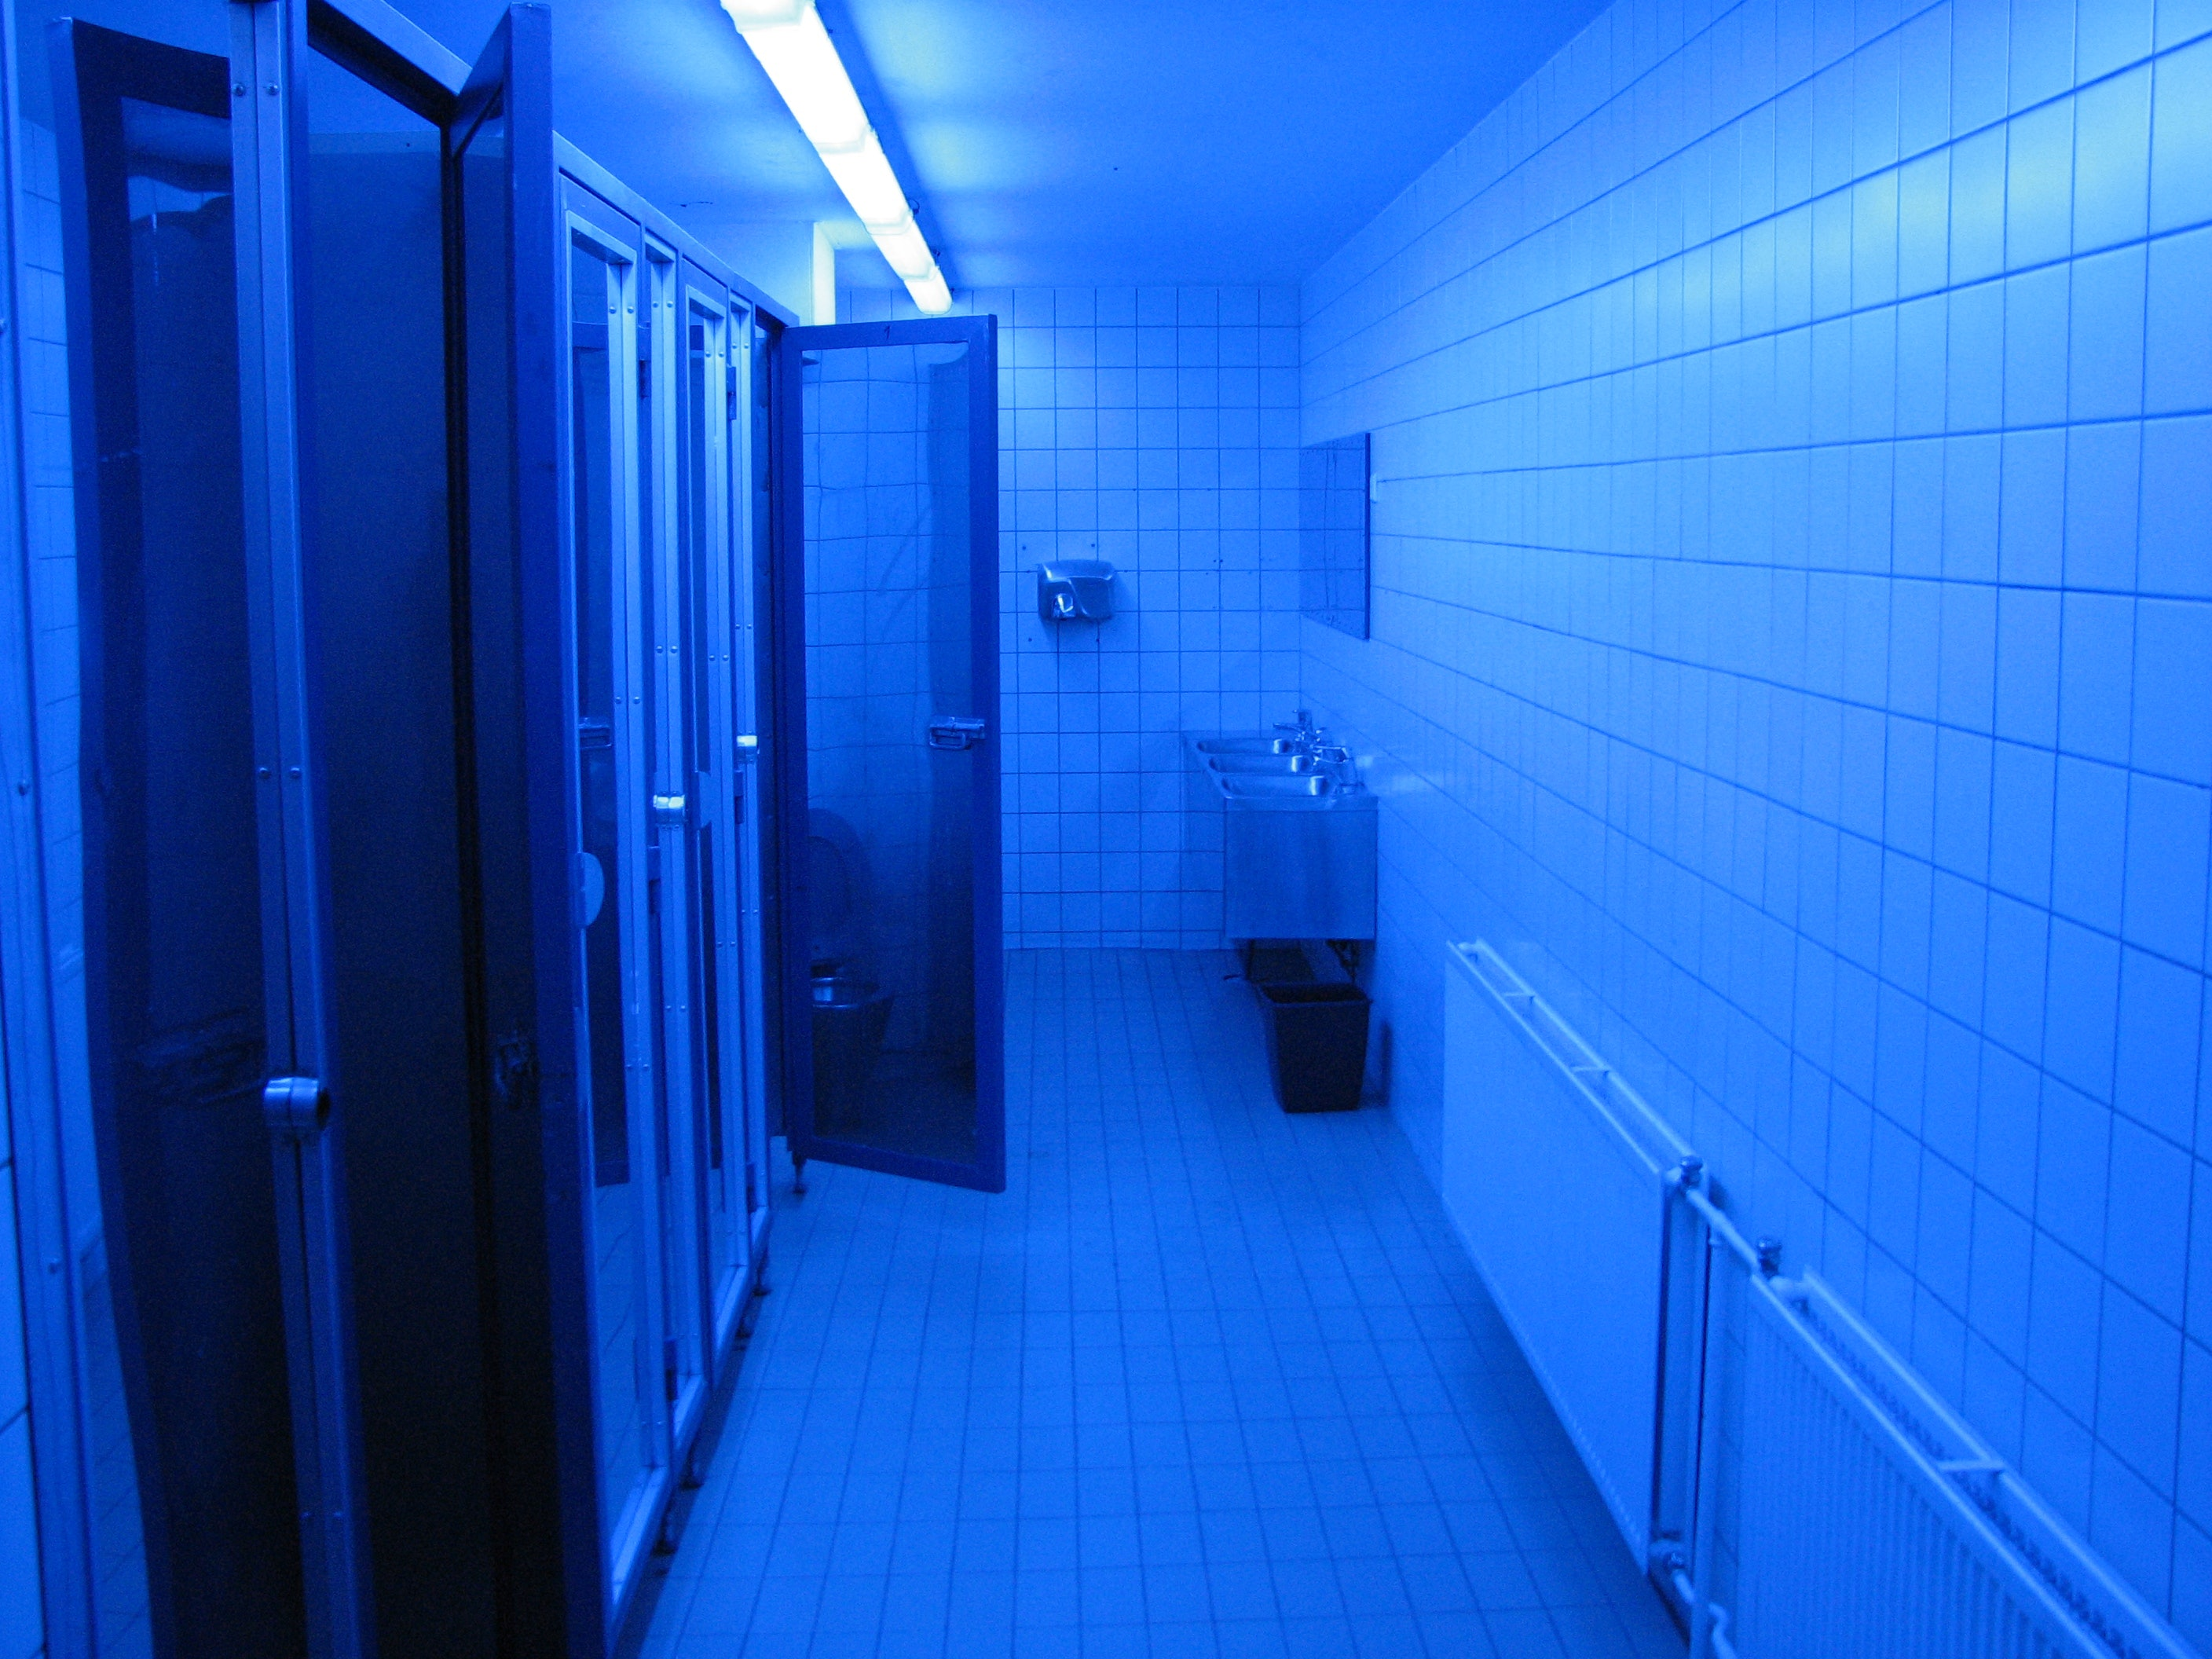 Blue Lights To Deter Users From